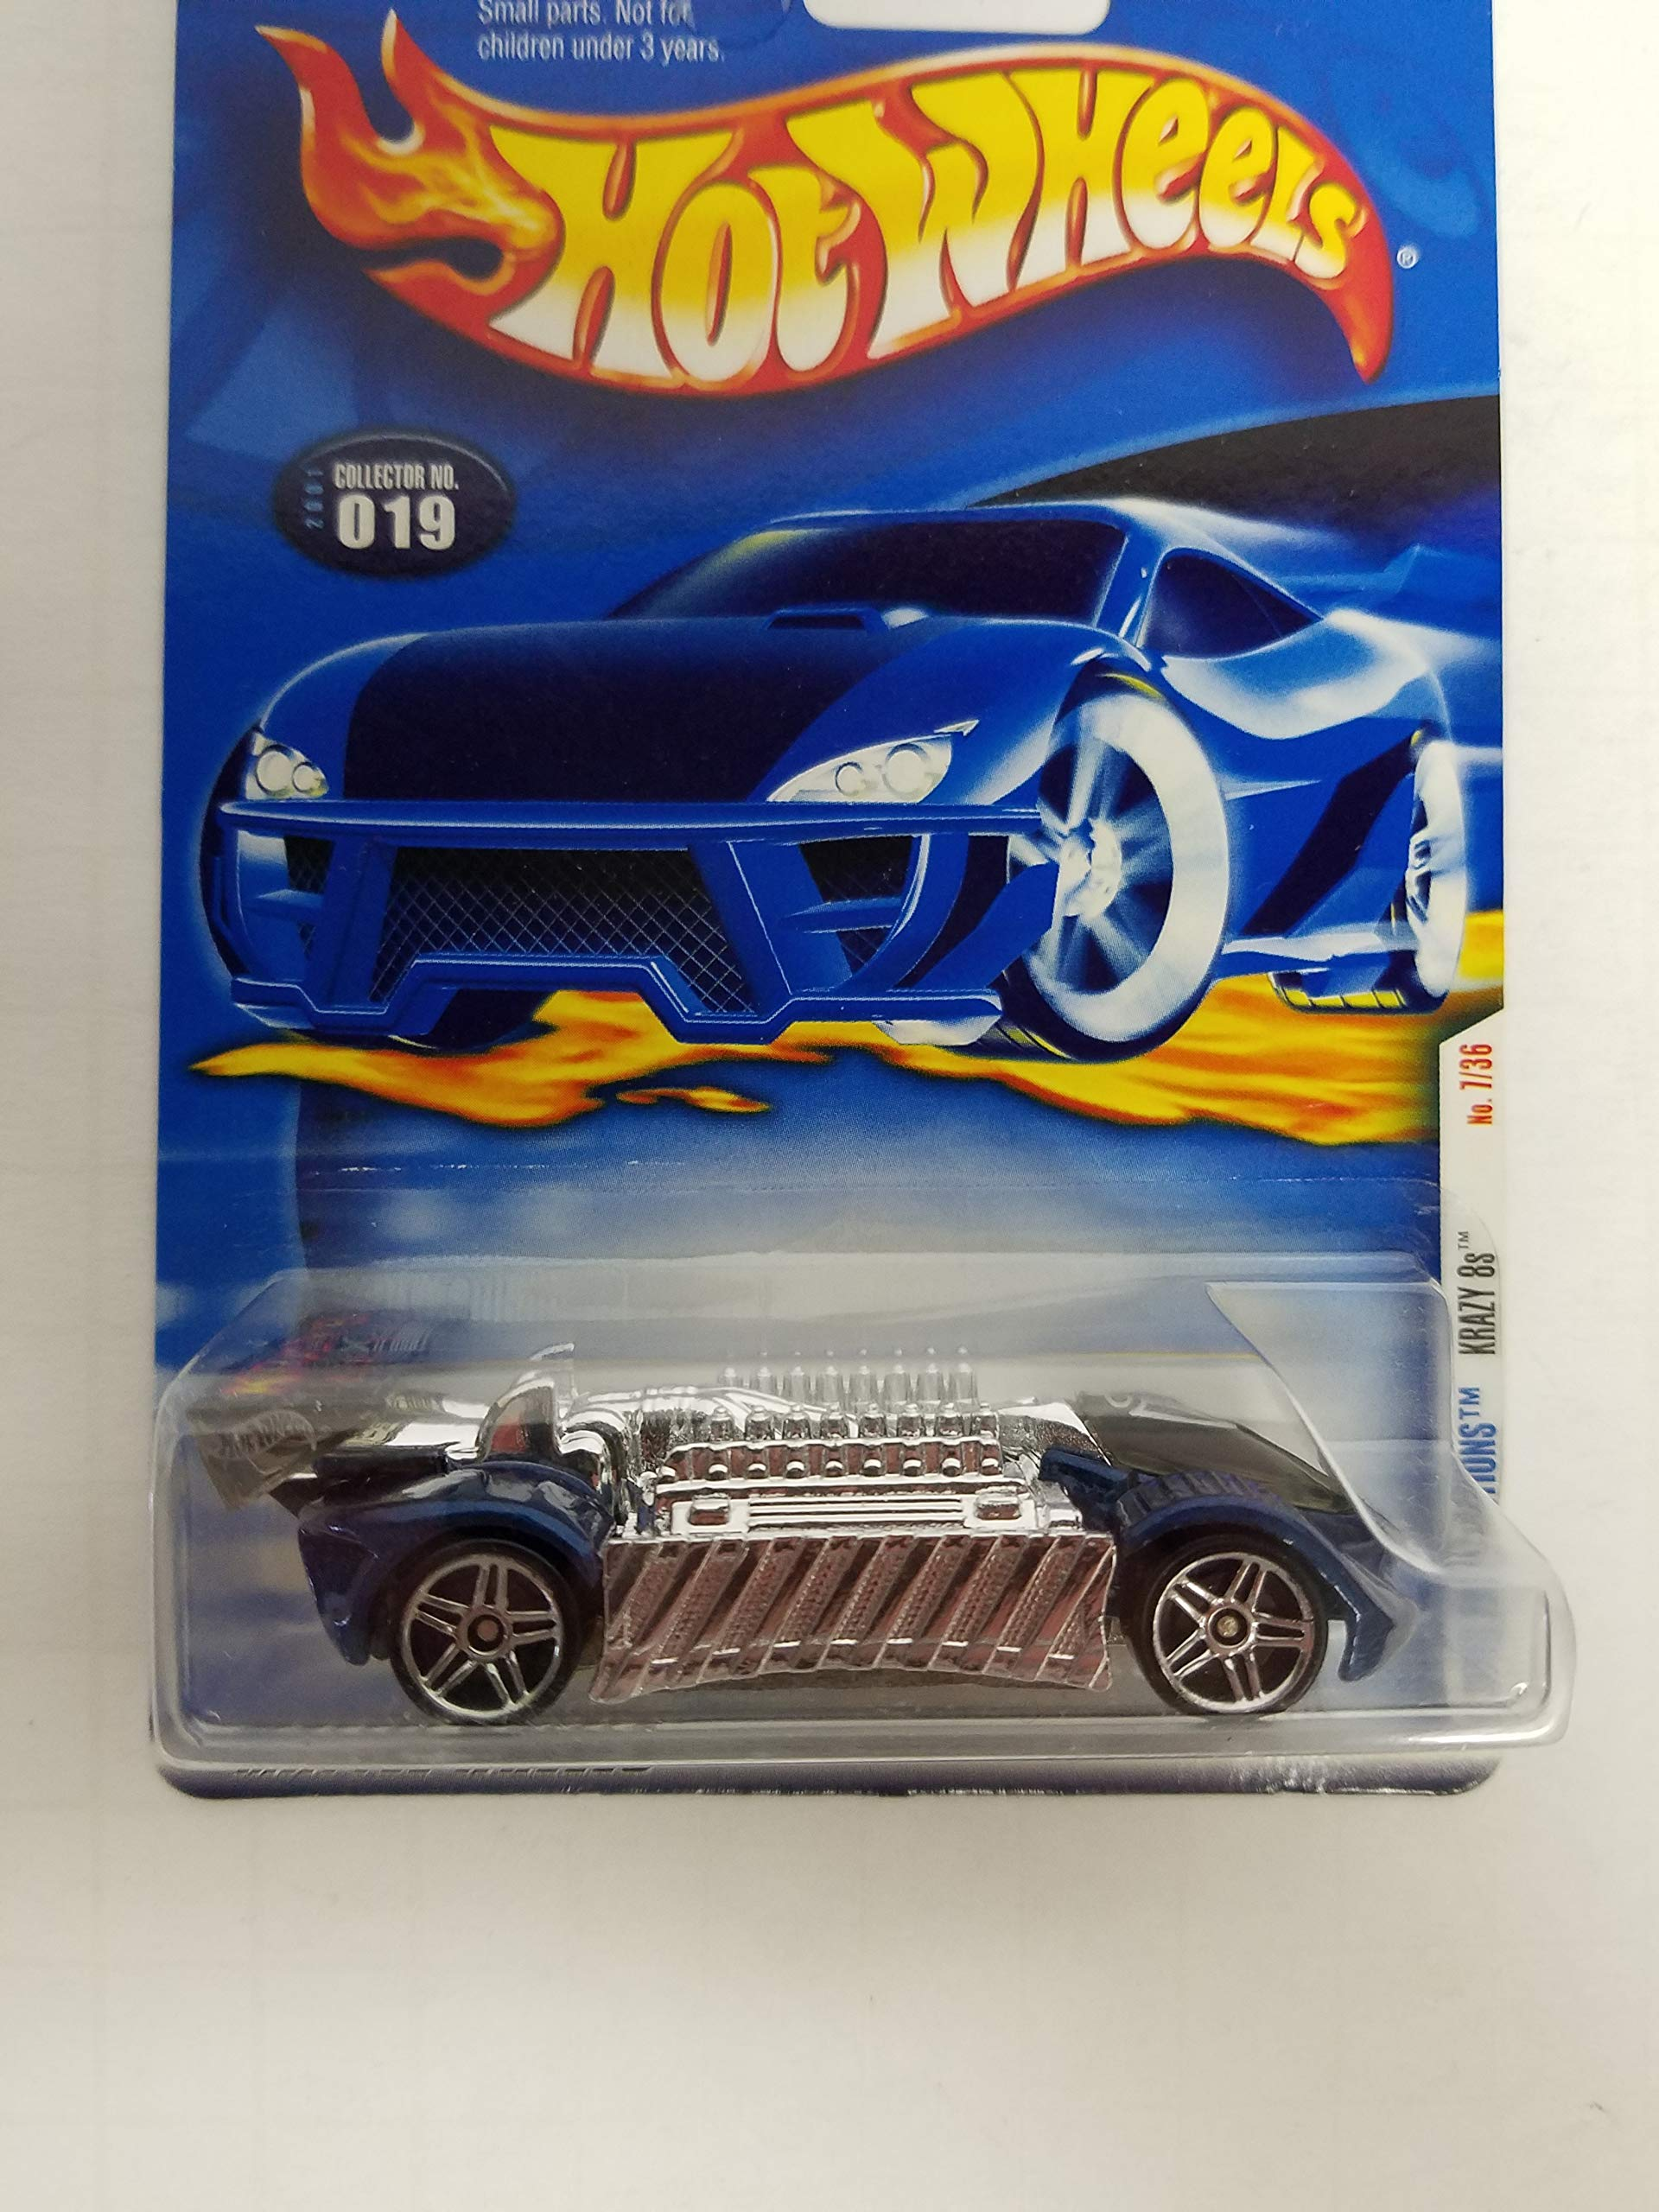 Krazy 8s Hot Wheels 2001 First Editions diecast 1/64 scale car No. 019